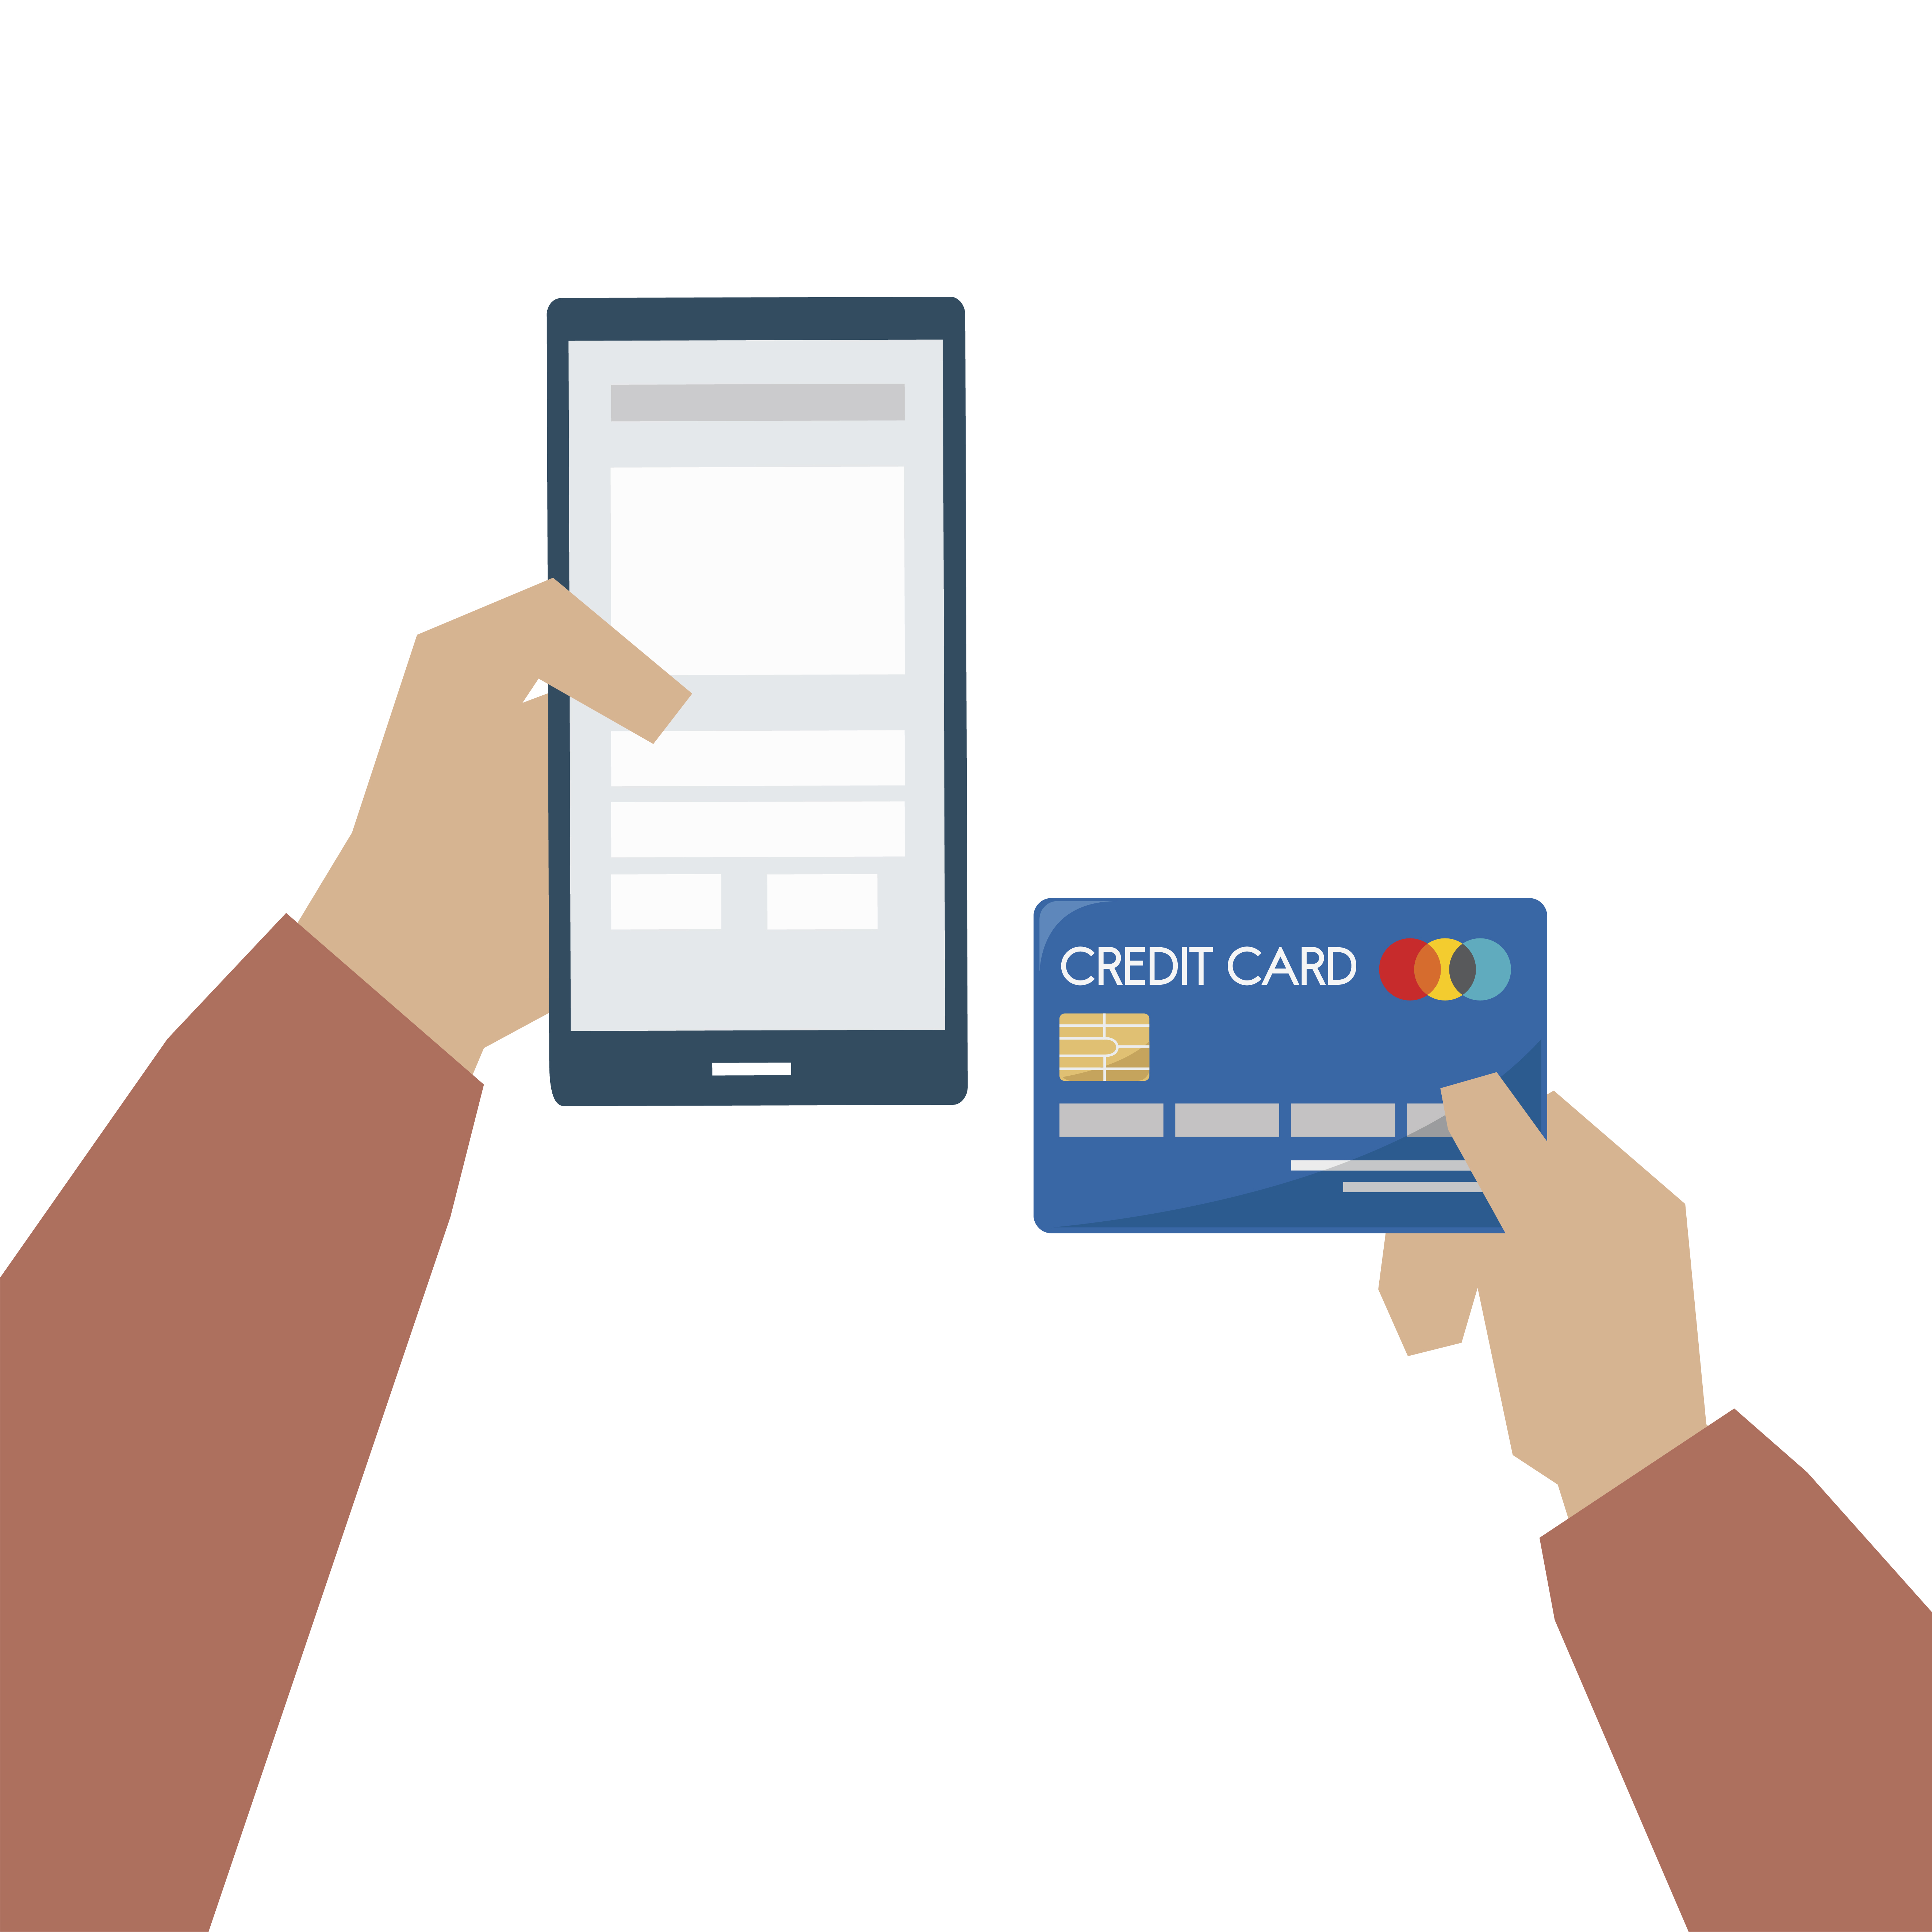 Do You Have What It Takes To Amazon Store Card The New Facebook?